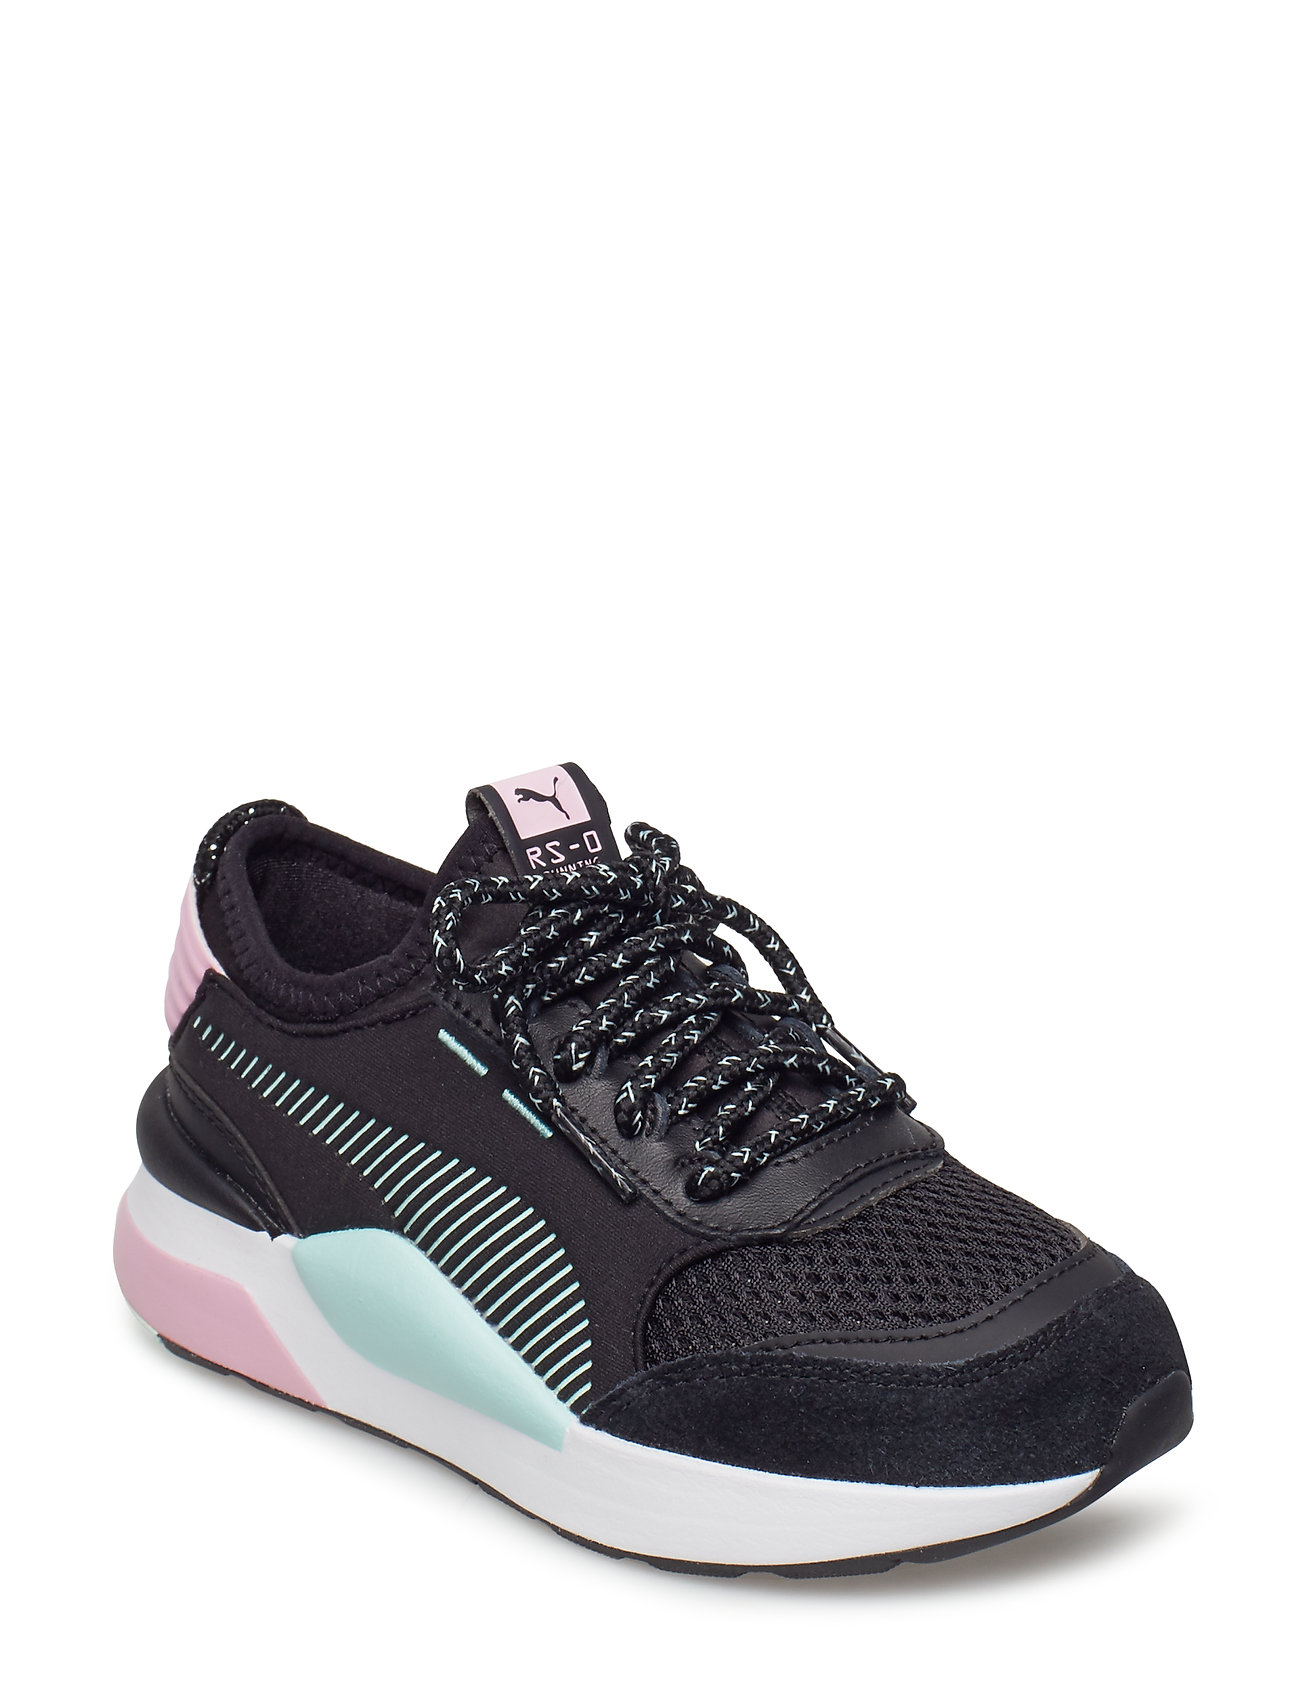 check out 4f178 30c2a Boozt   Baby   Kids   Shoes. PUMA RS-0 Winter Inj Toys PS